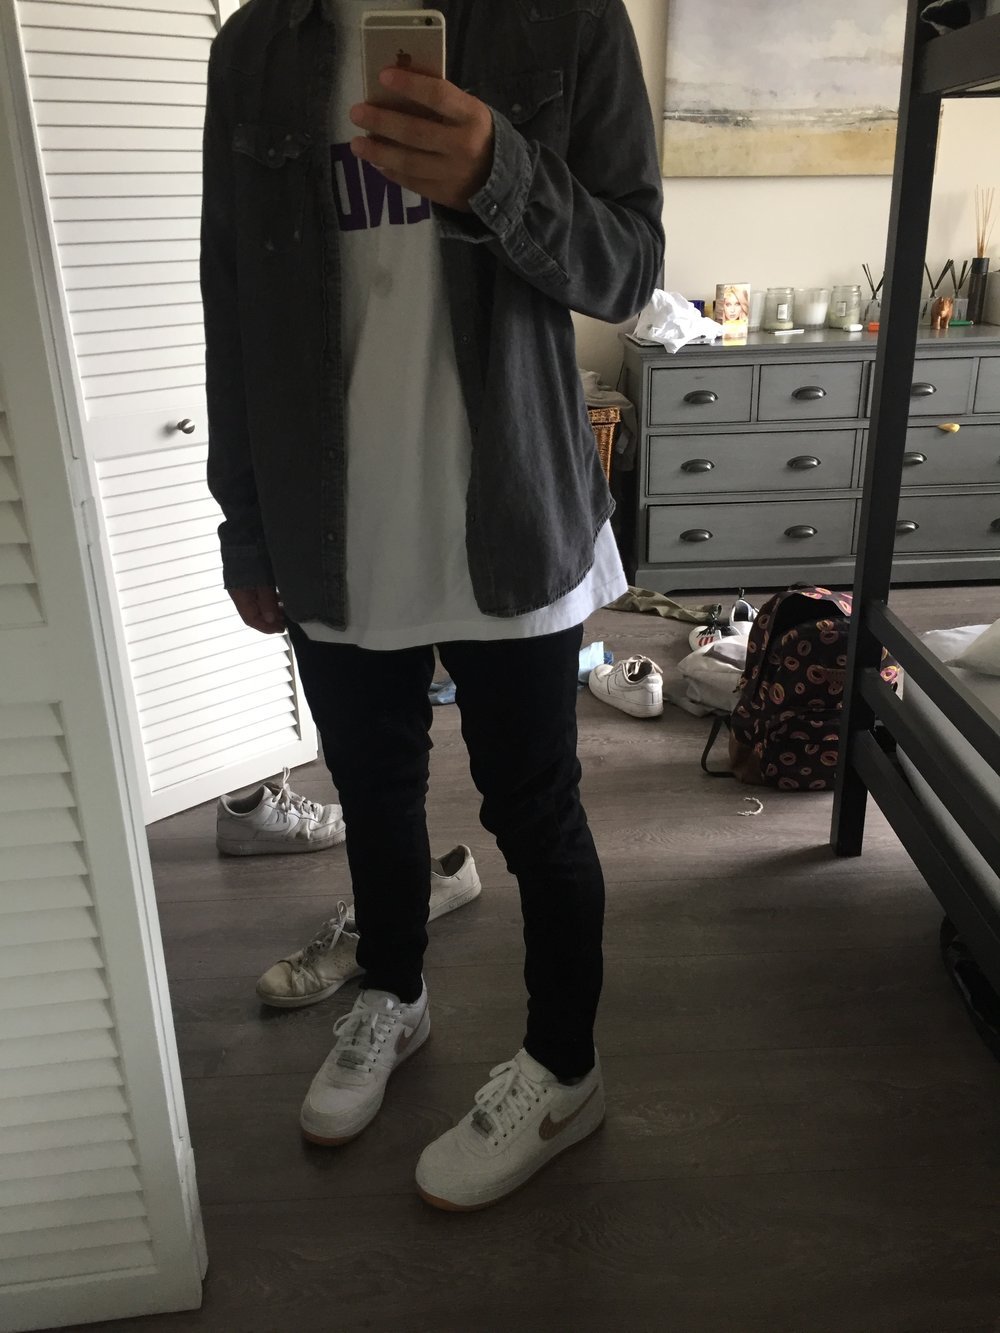 1. Vlone T-shirt  2. Camo Pants  3.  Air Force One Sneakers